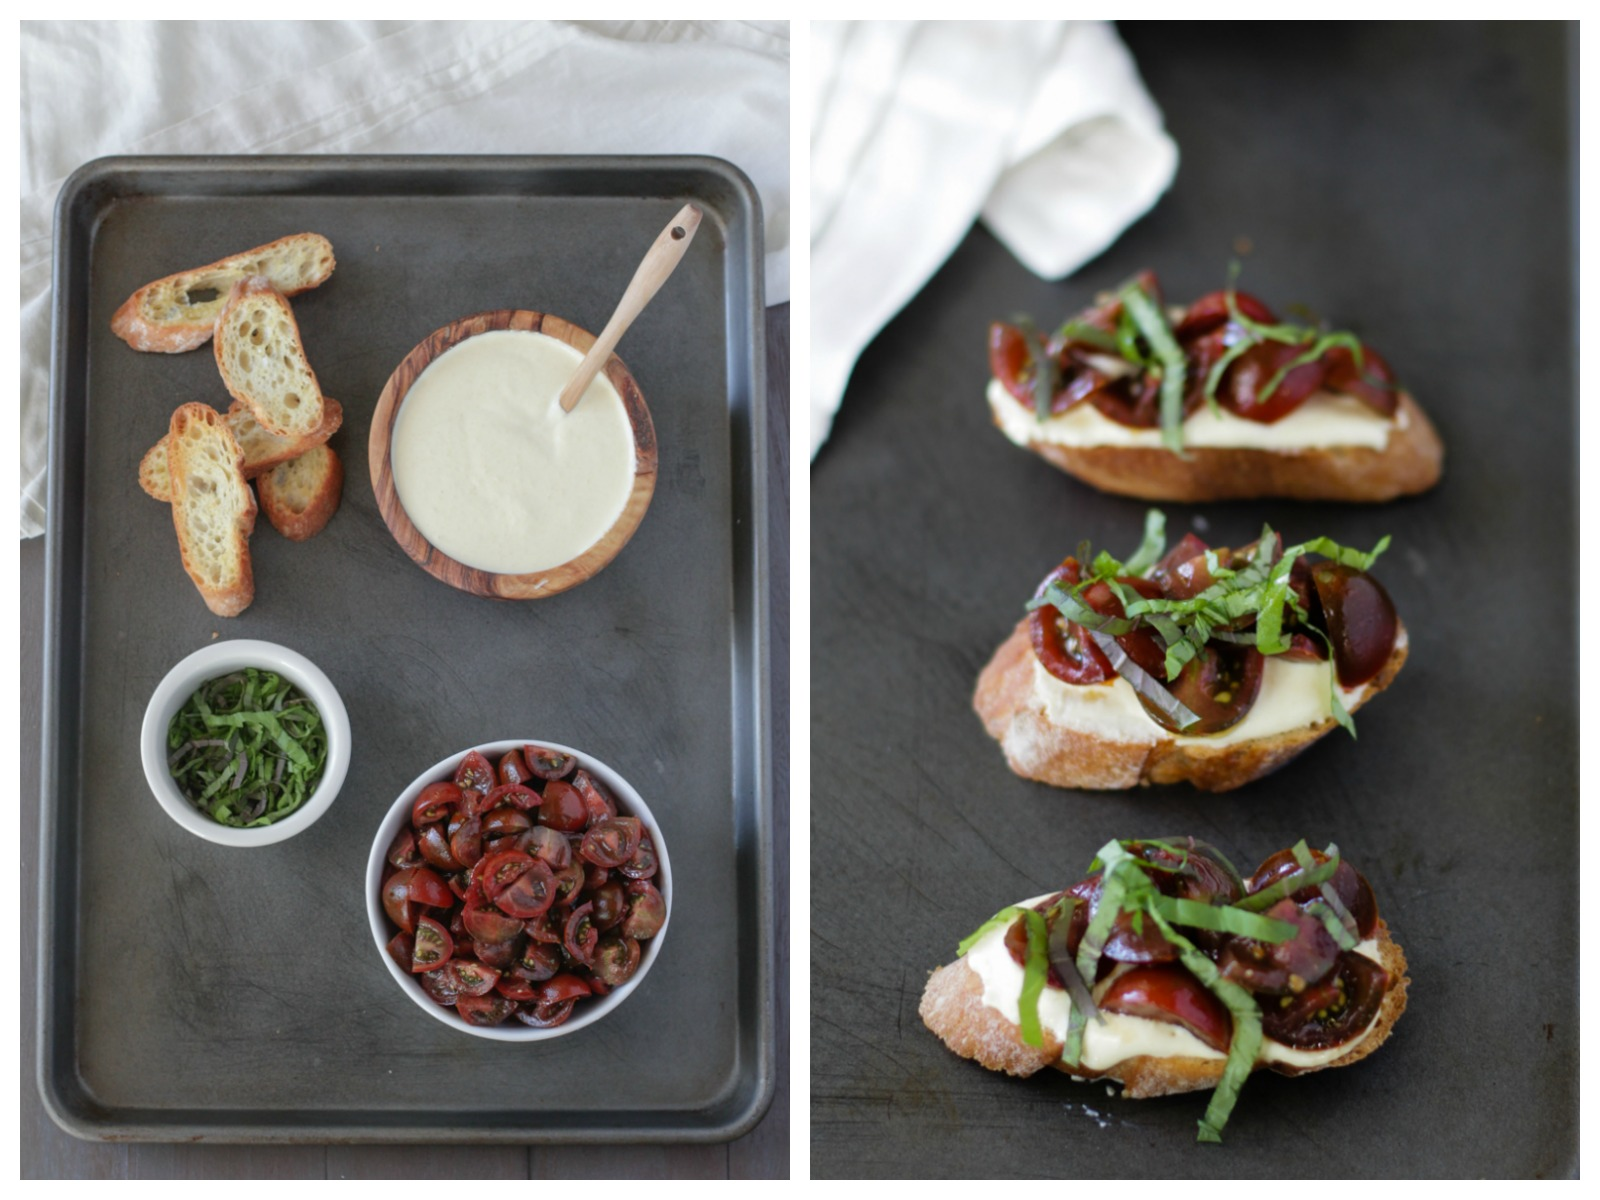 Cling Peach Goat Cheese Crostini with Tomatoes and Basil | Alyssa & Carla